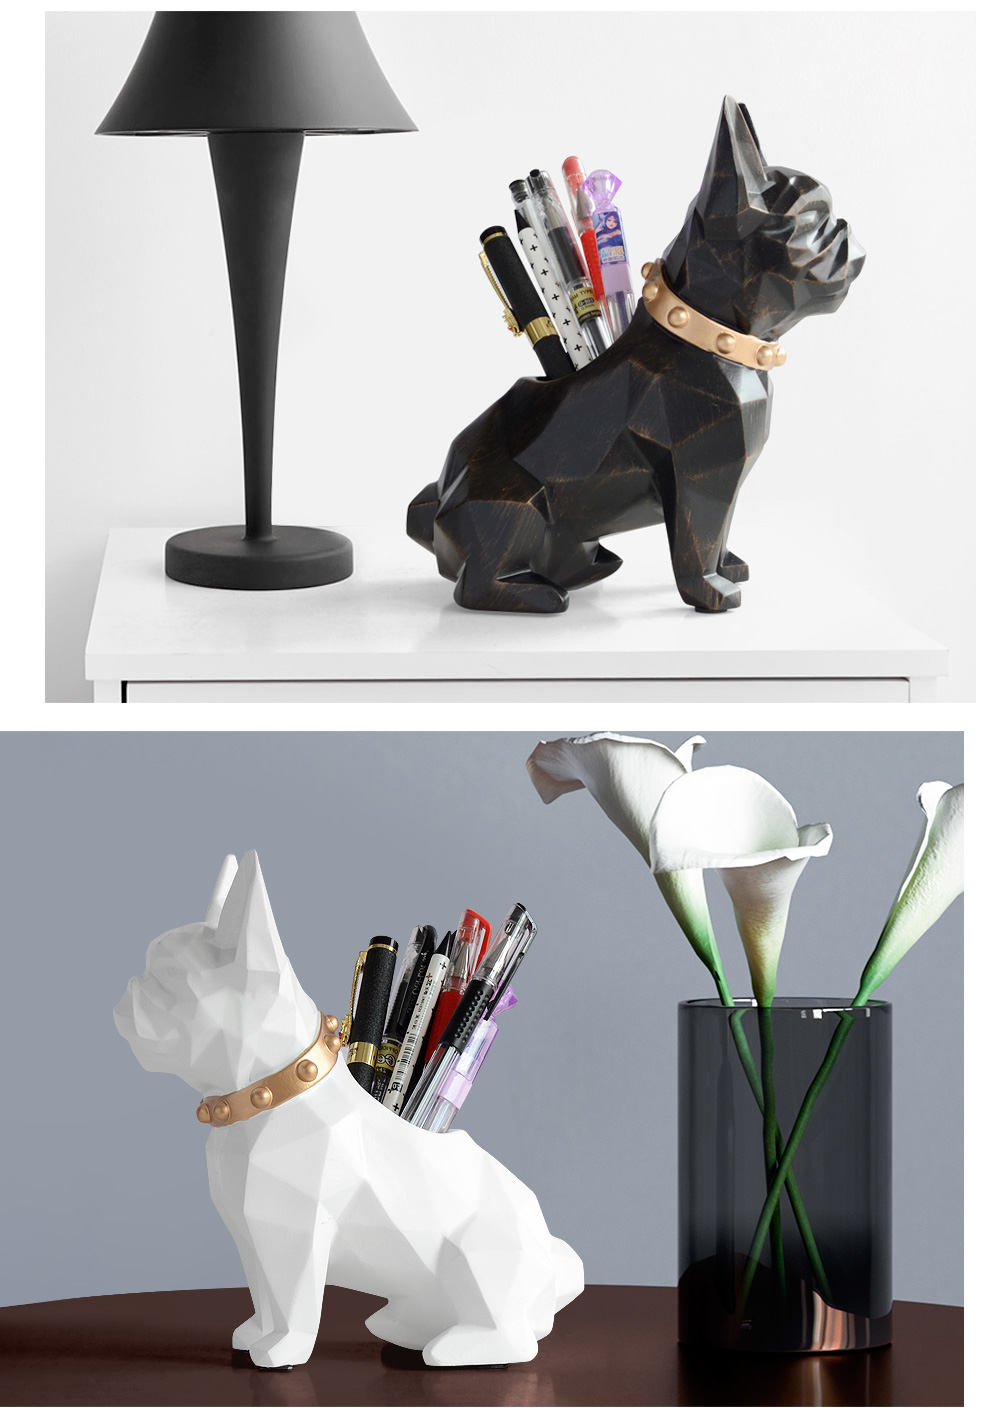 Bulldog Desk Organizer_8_Wrap Smile.png